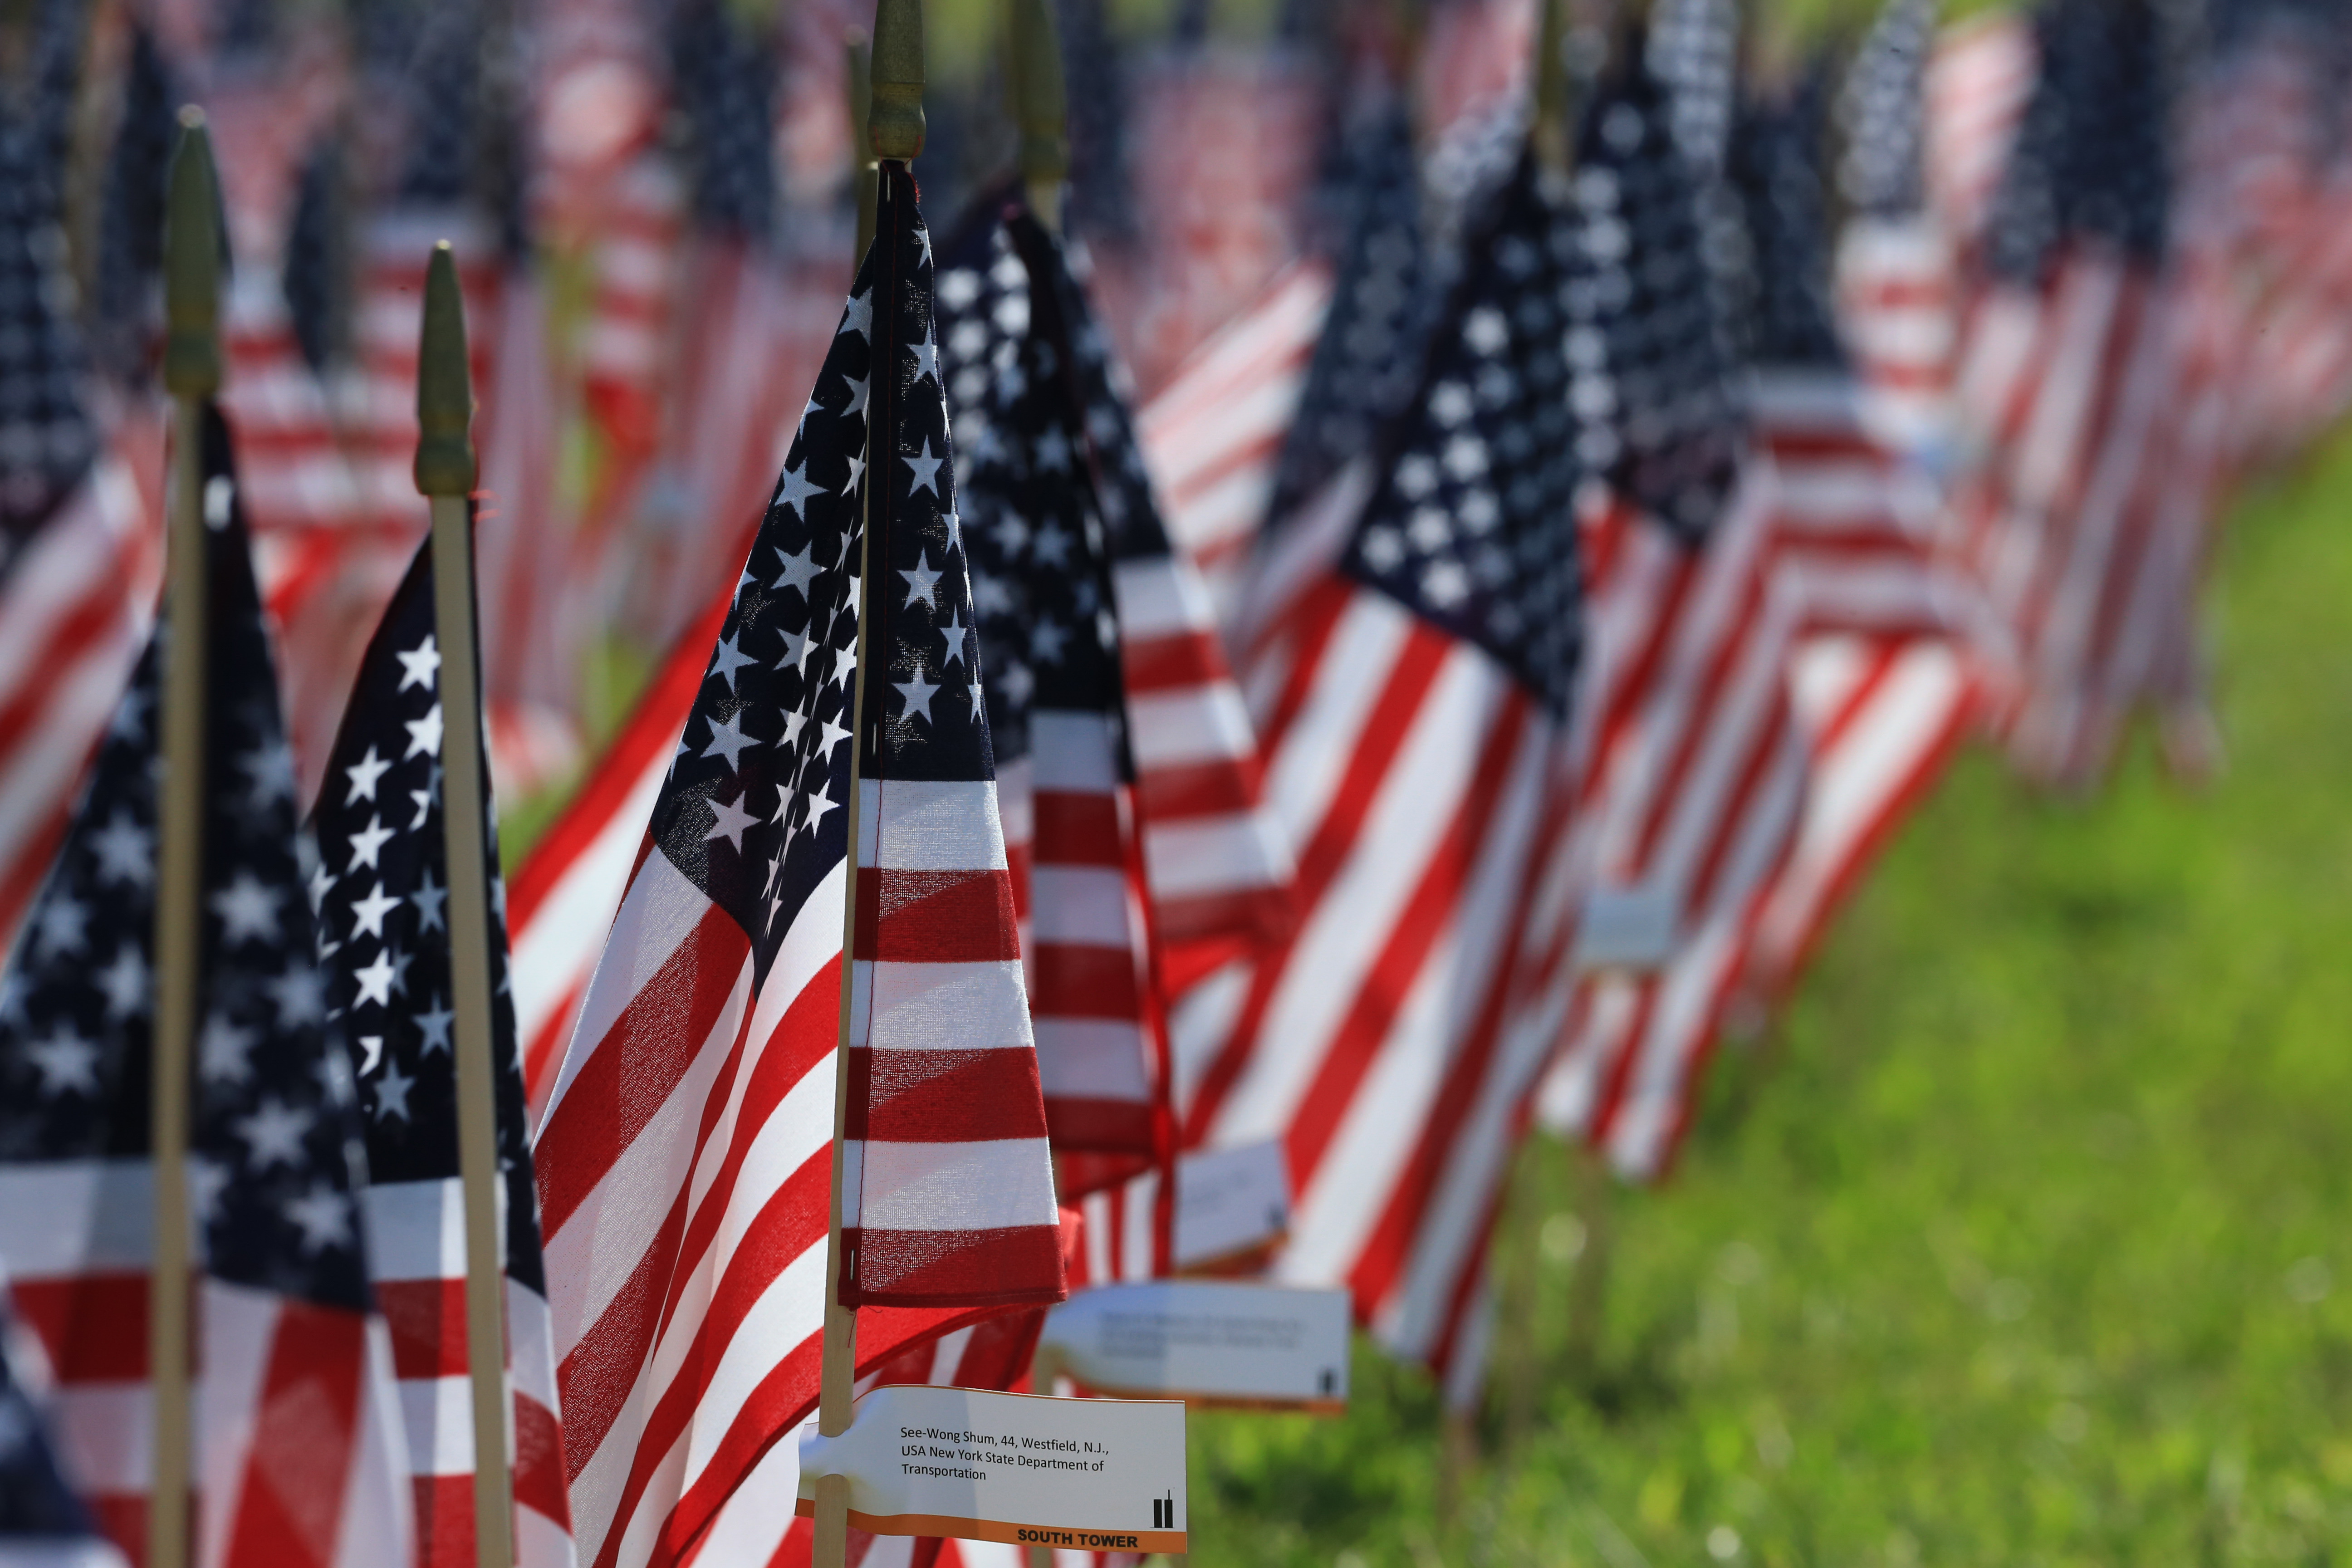 Events planned to mark National Day of Service and Remembrance